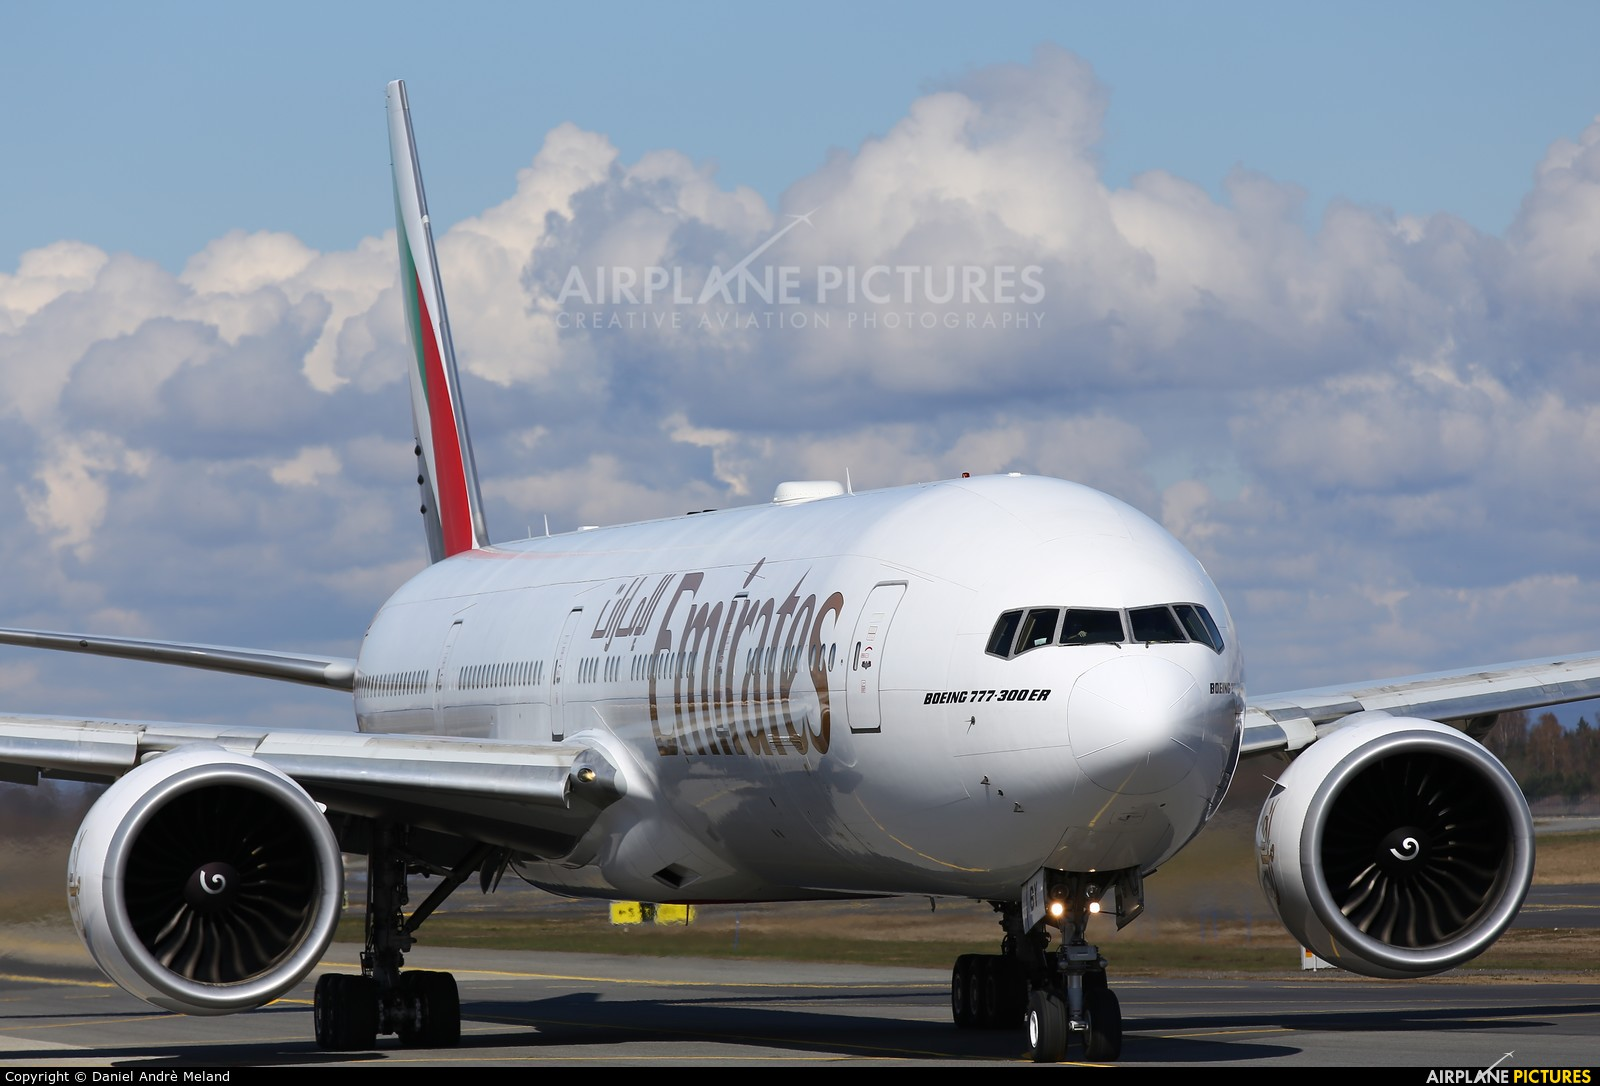 Emirates Airlines A6-EBY aircraft at Oslo - Gardermoen